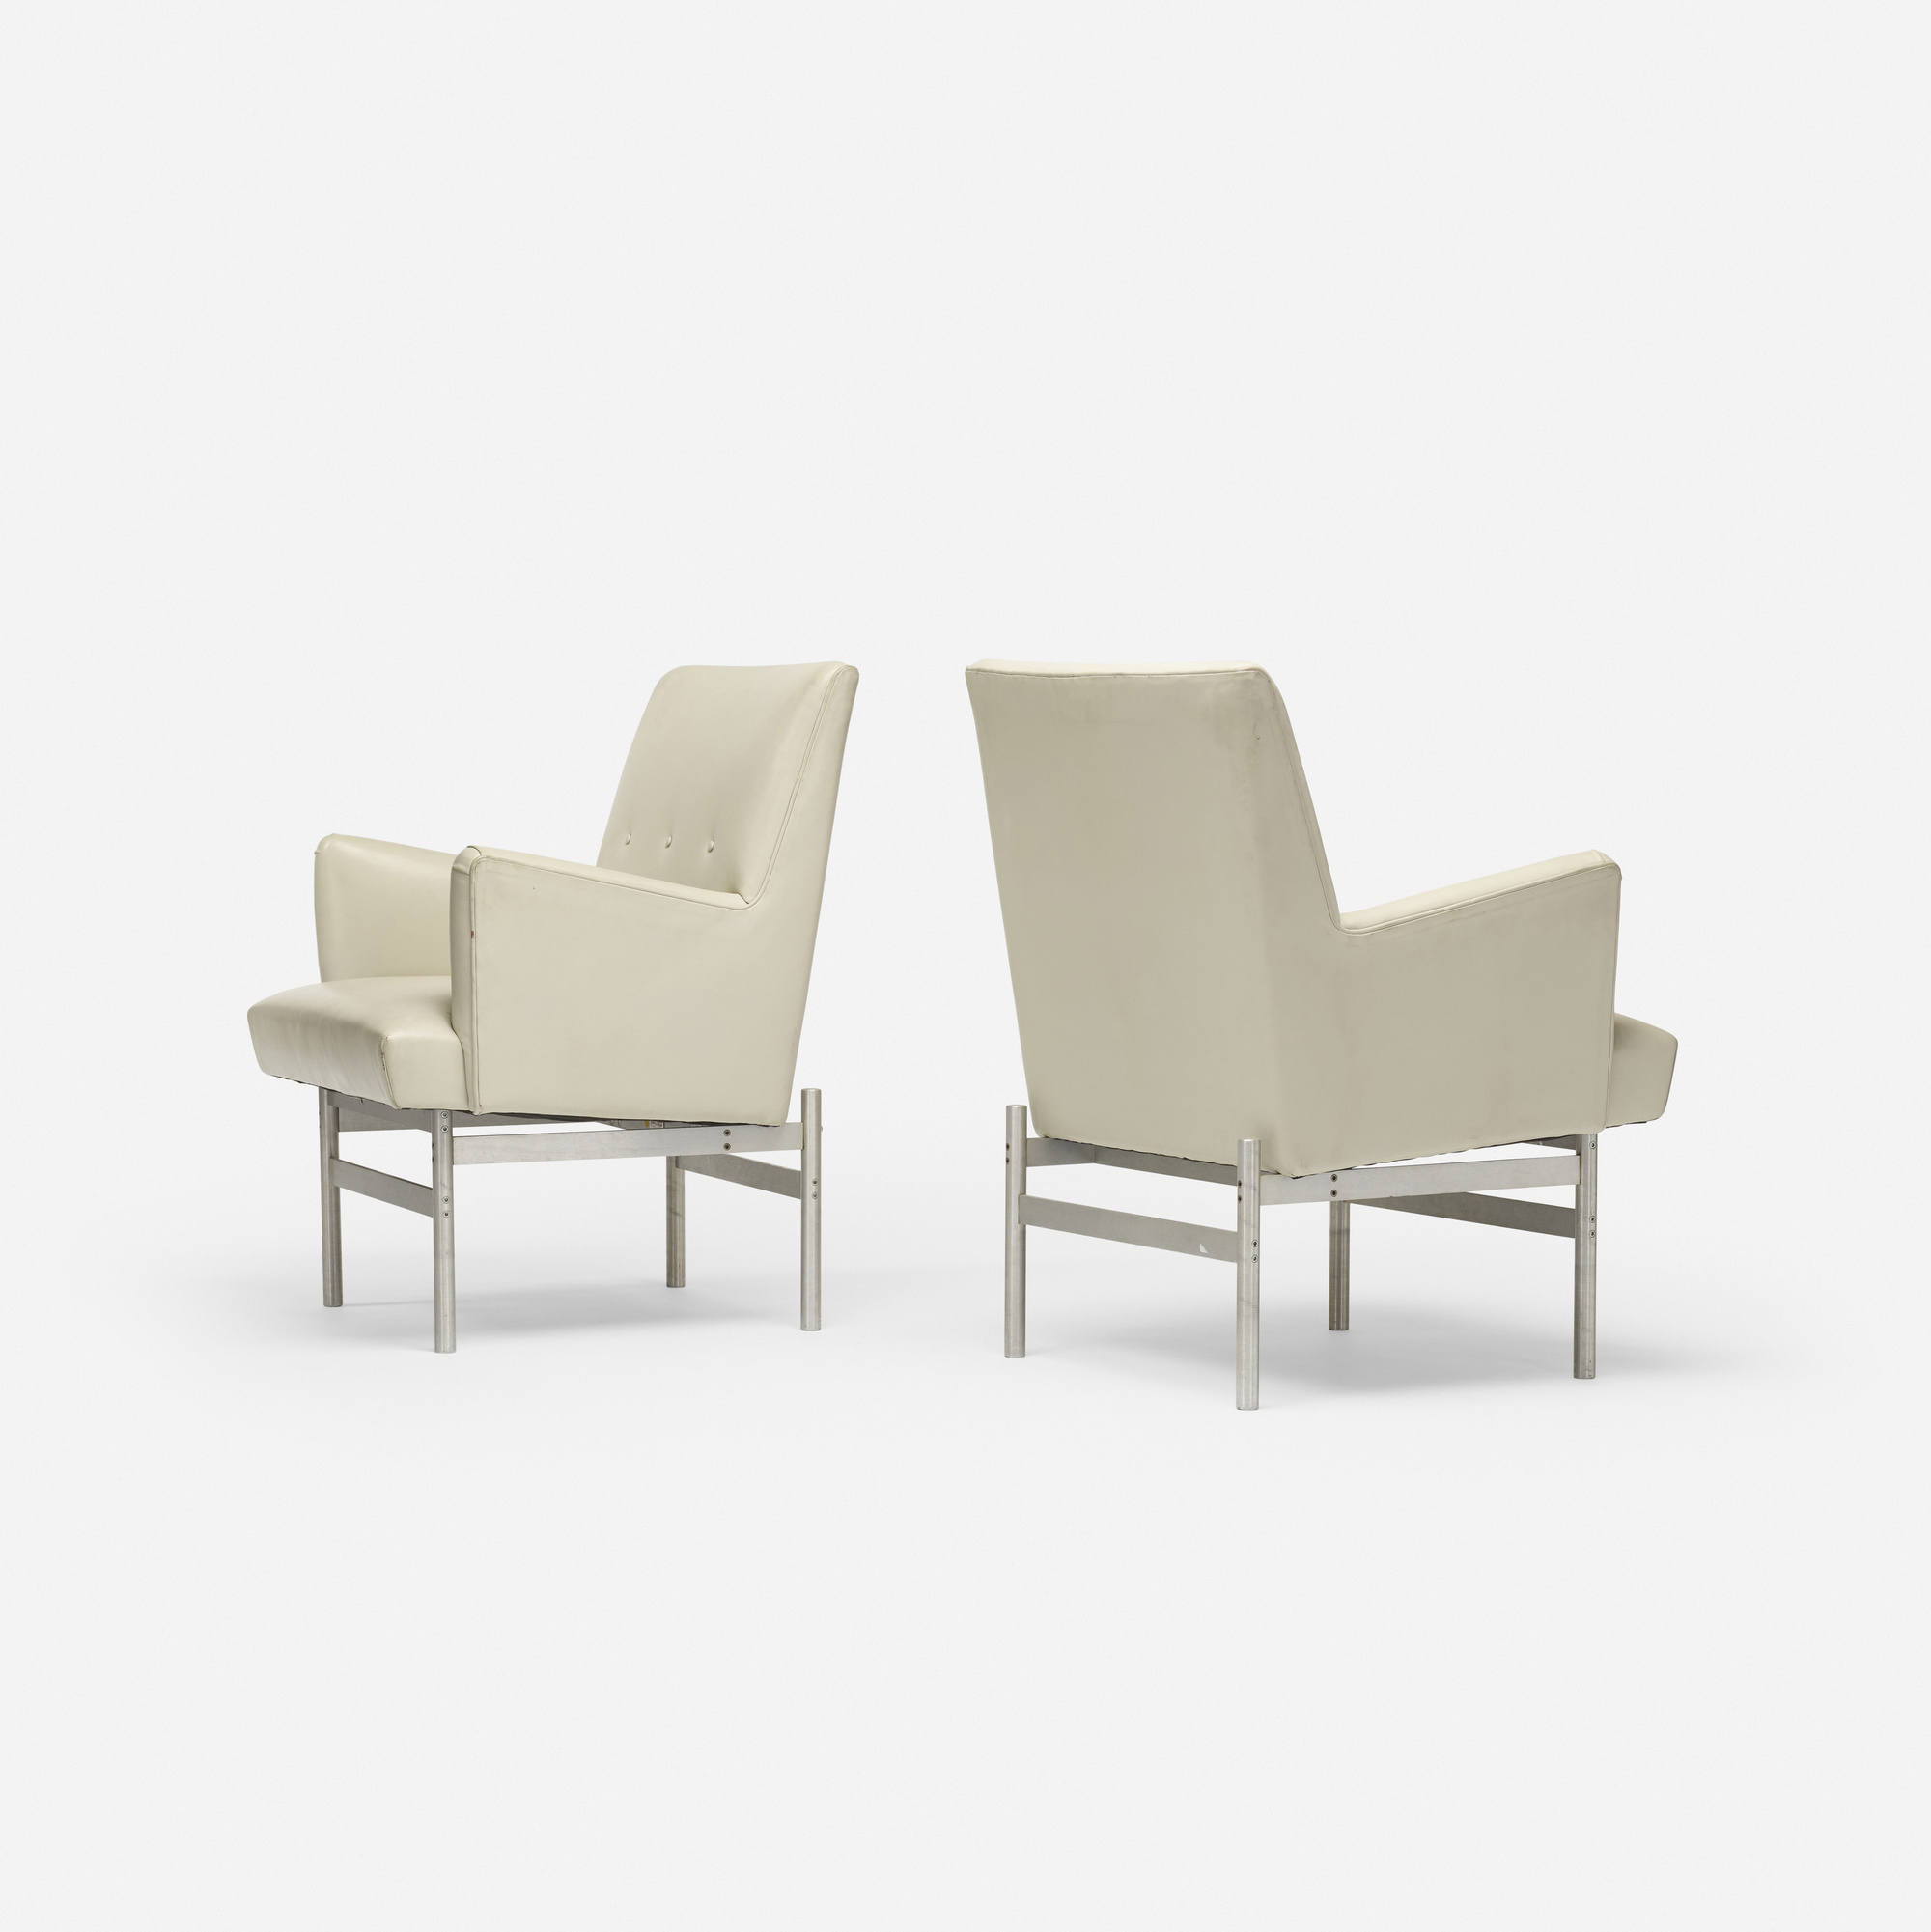 605: Modern / lounge chairs, pair (2 of 3)